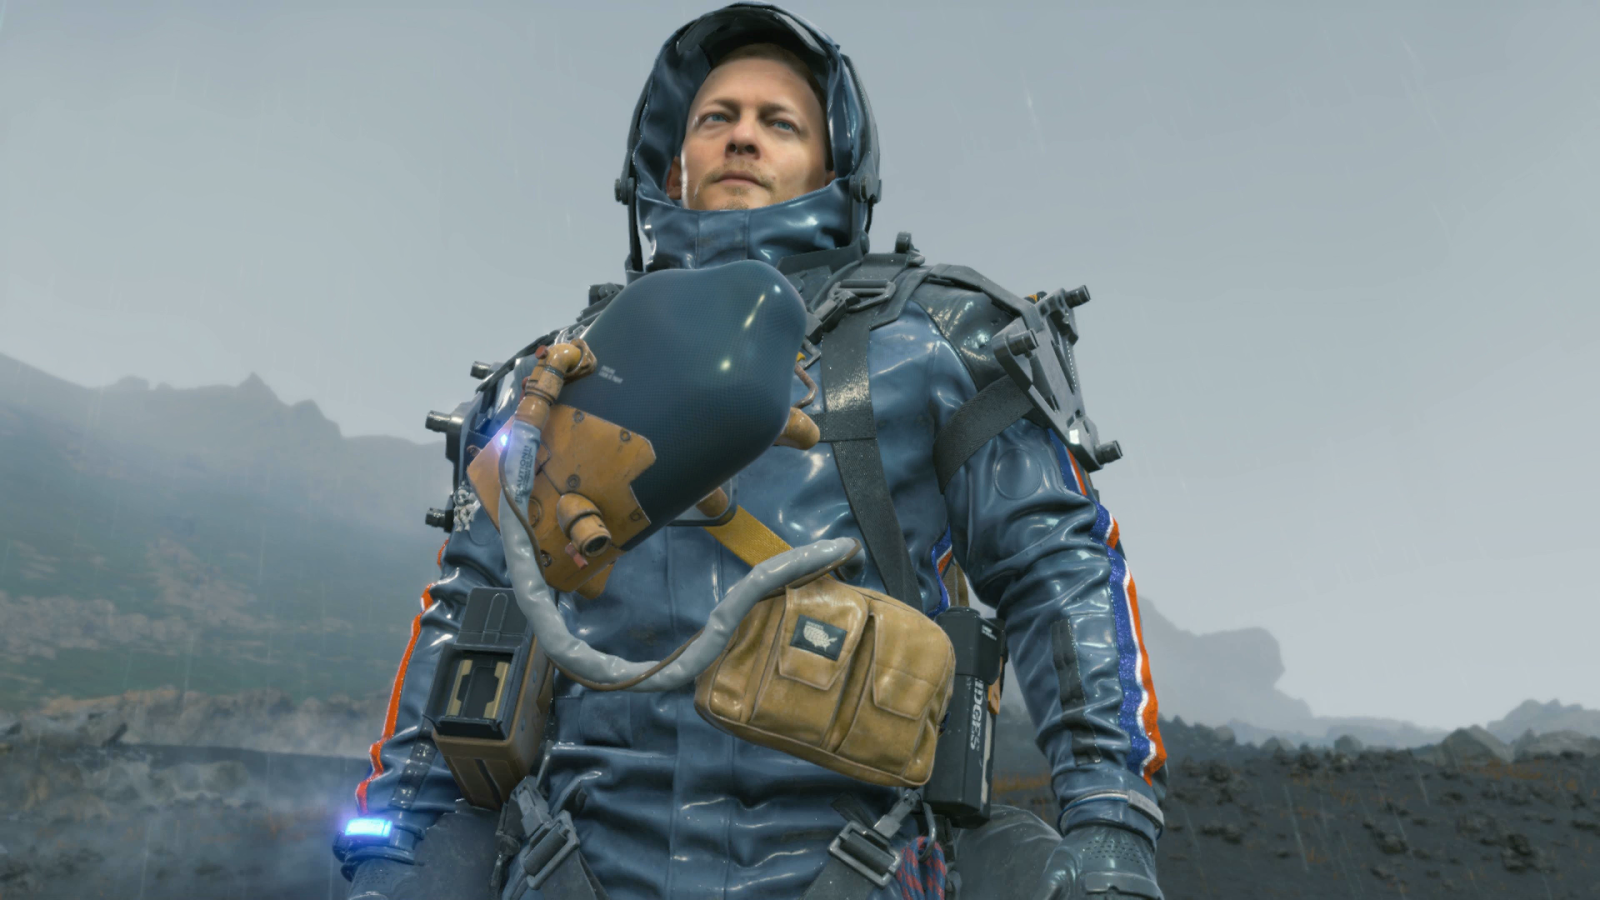 PSA: Get To Death Stranding Chapter 3 As Quickly As Possible